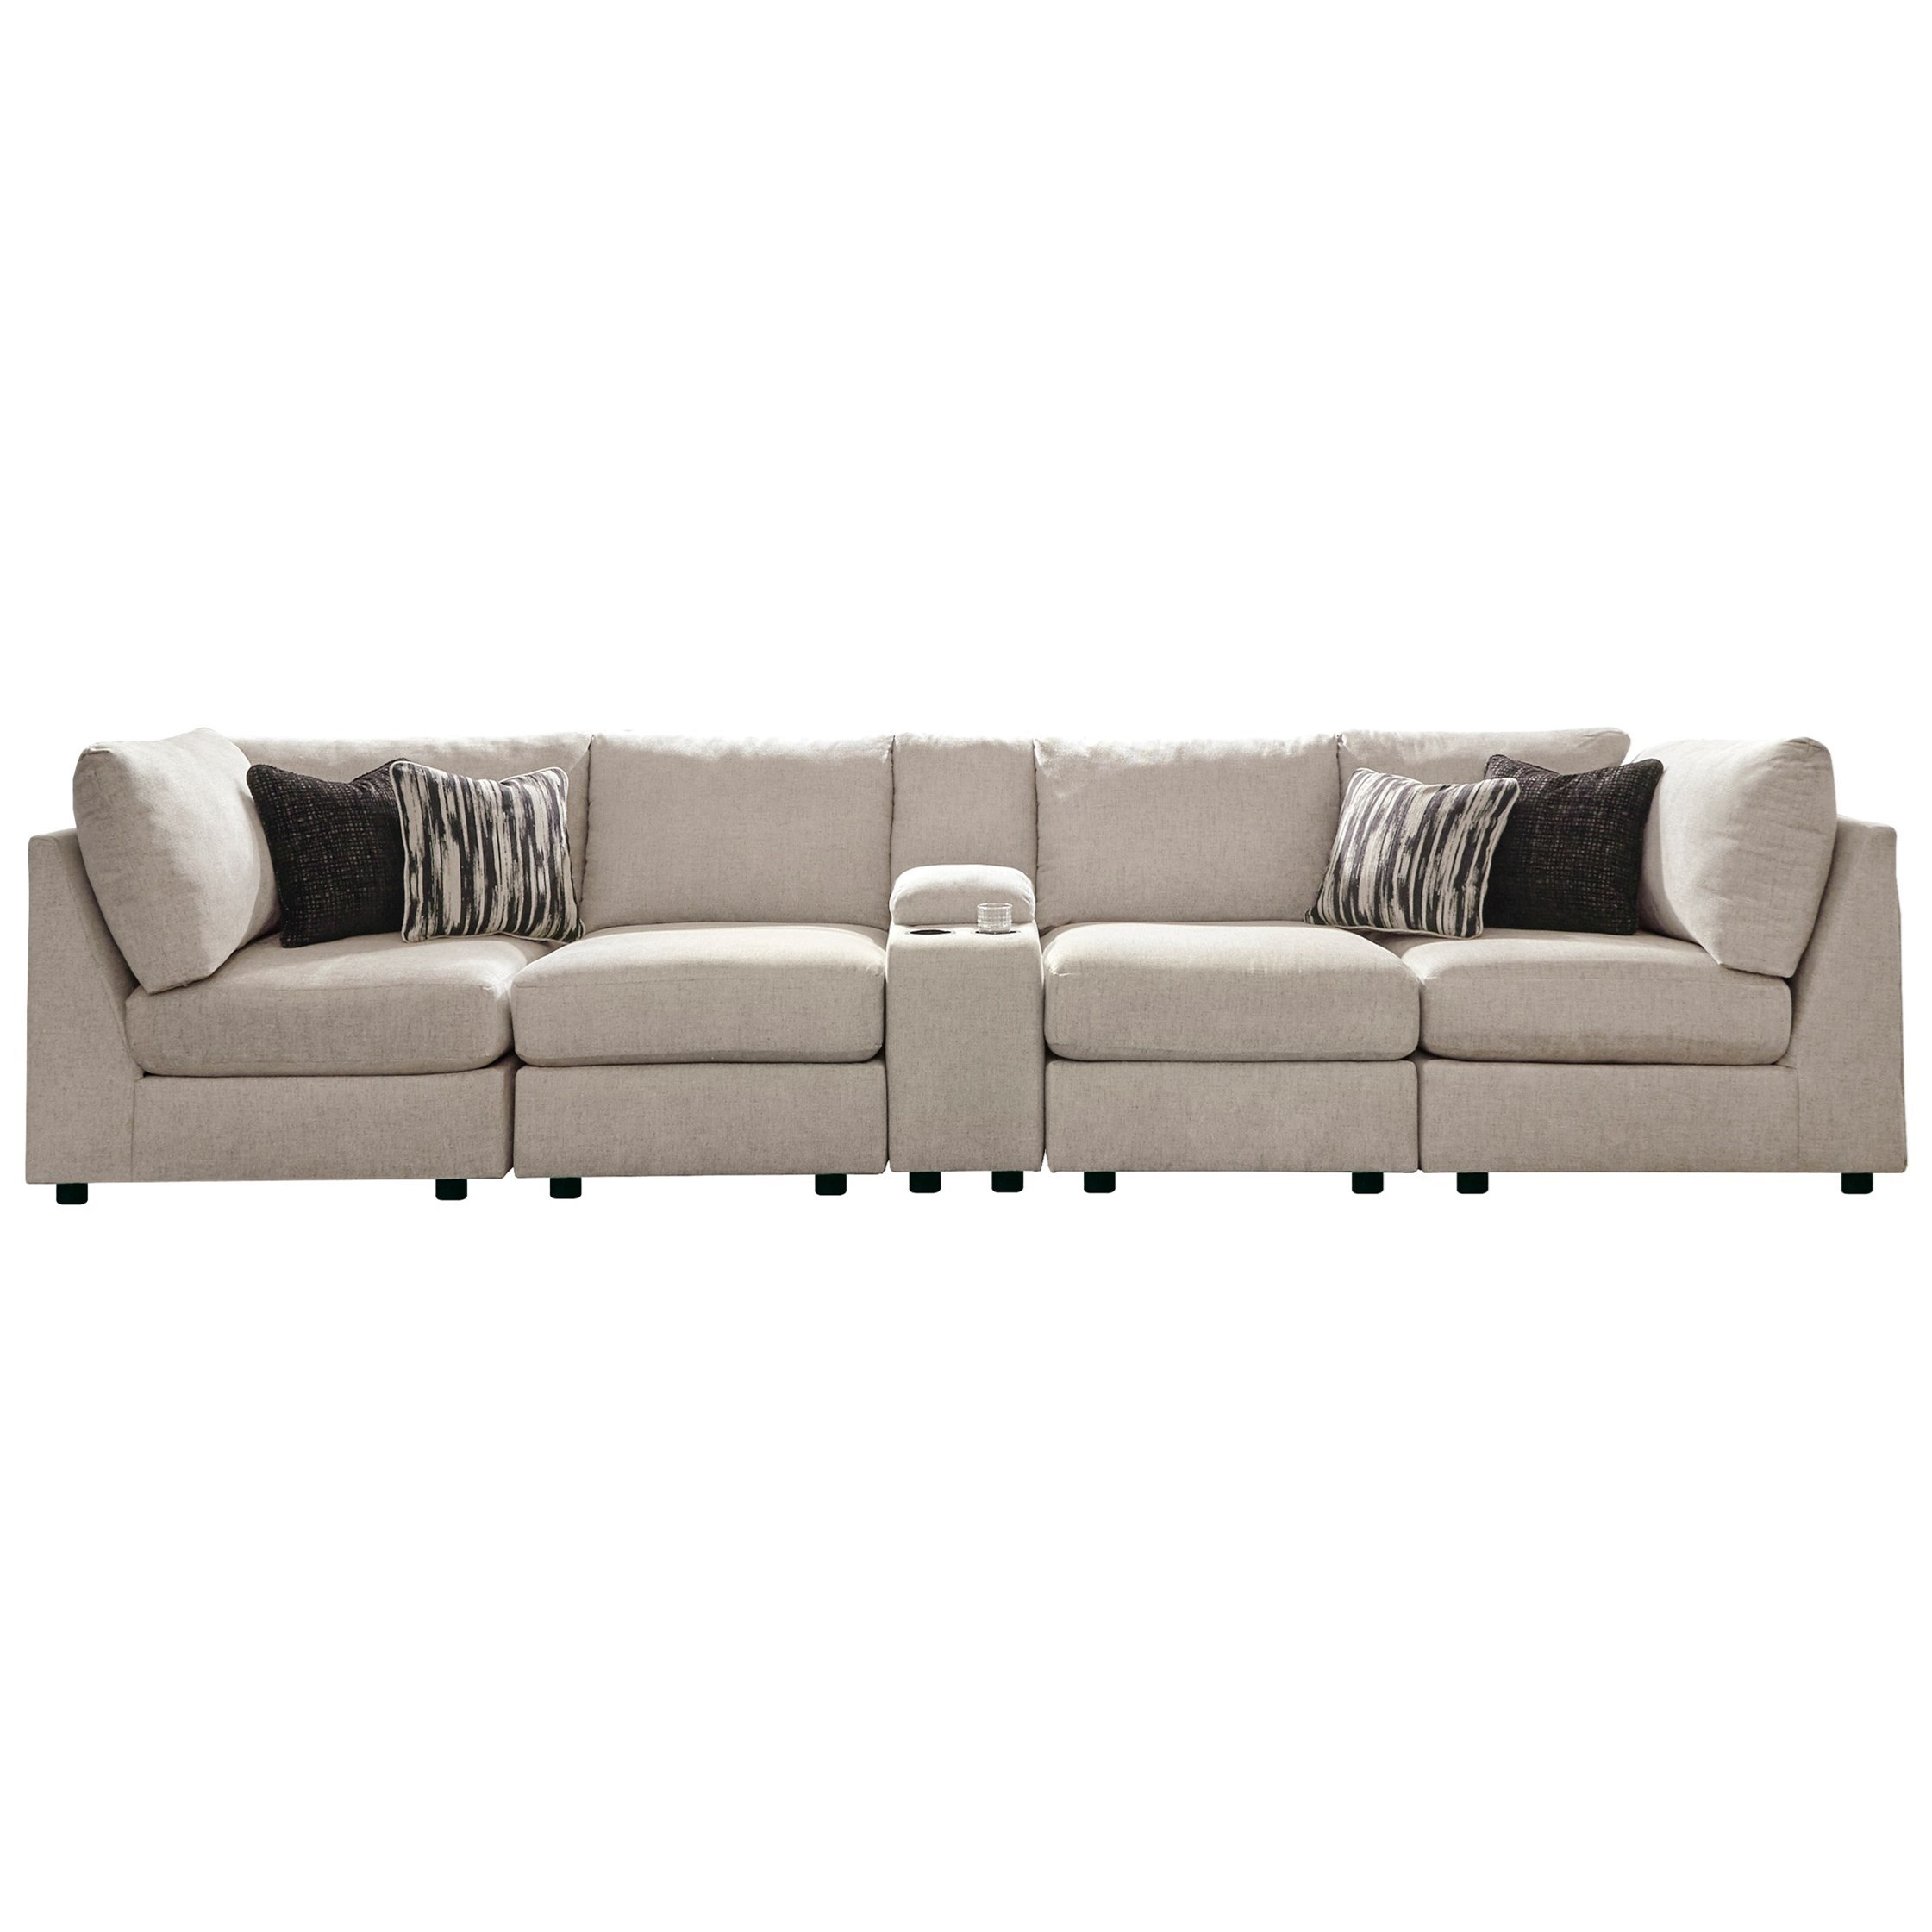 Kellway 5-Piece Sectional by Signature Design by Ashley at Zak's Home Outlet